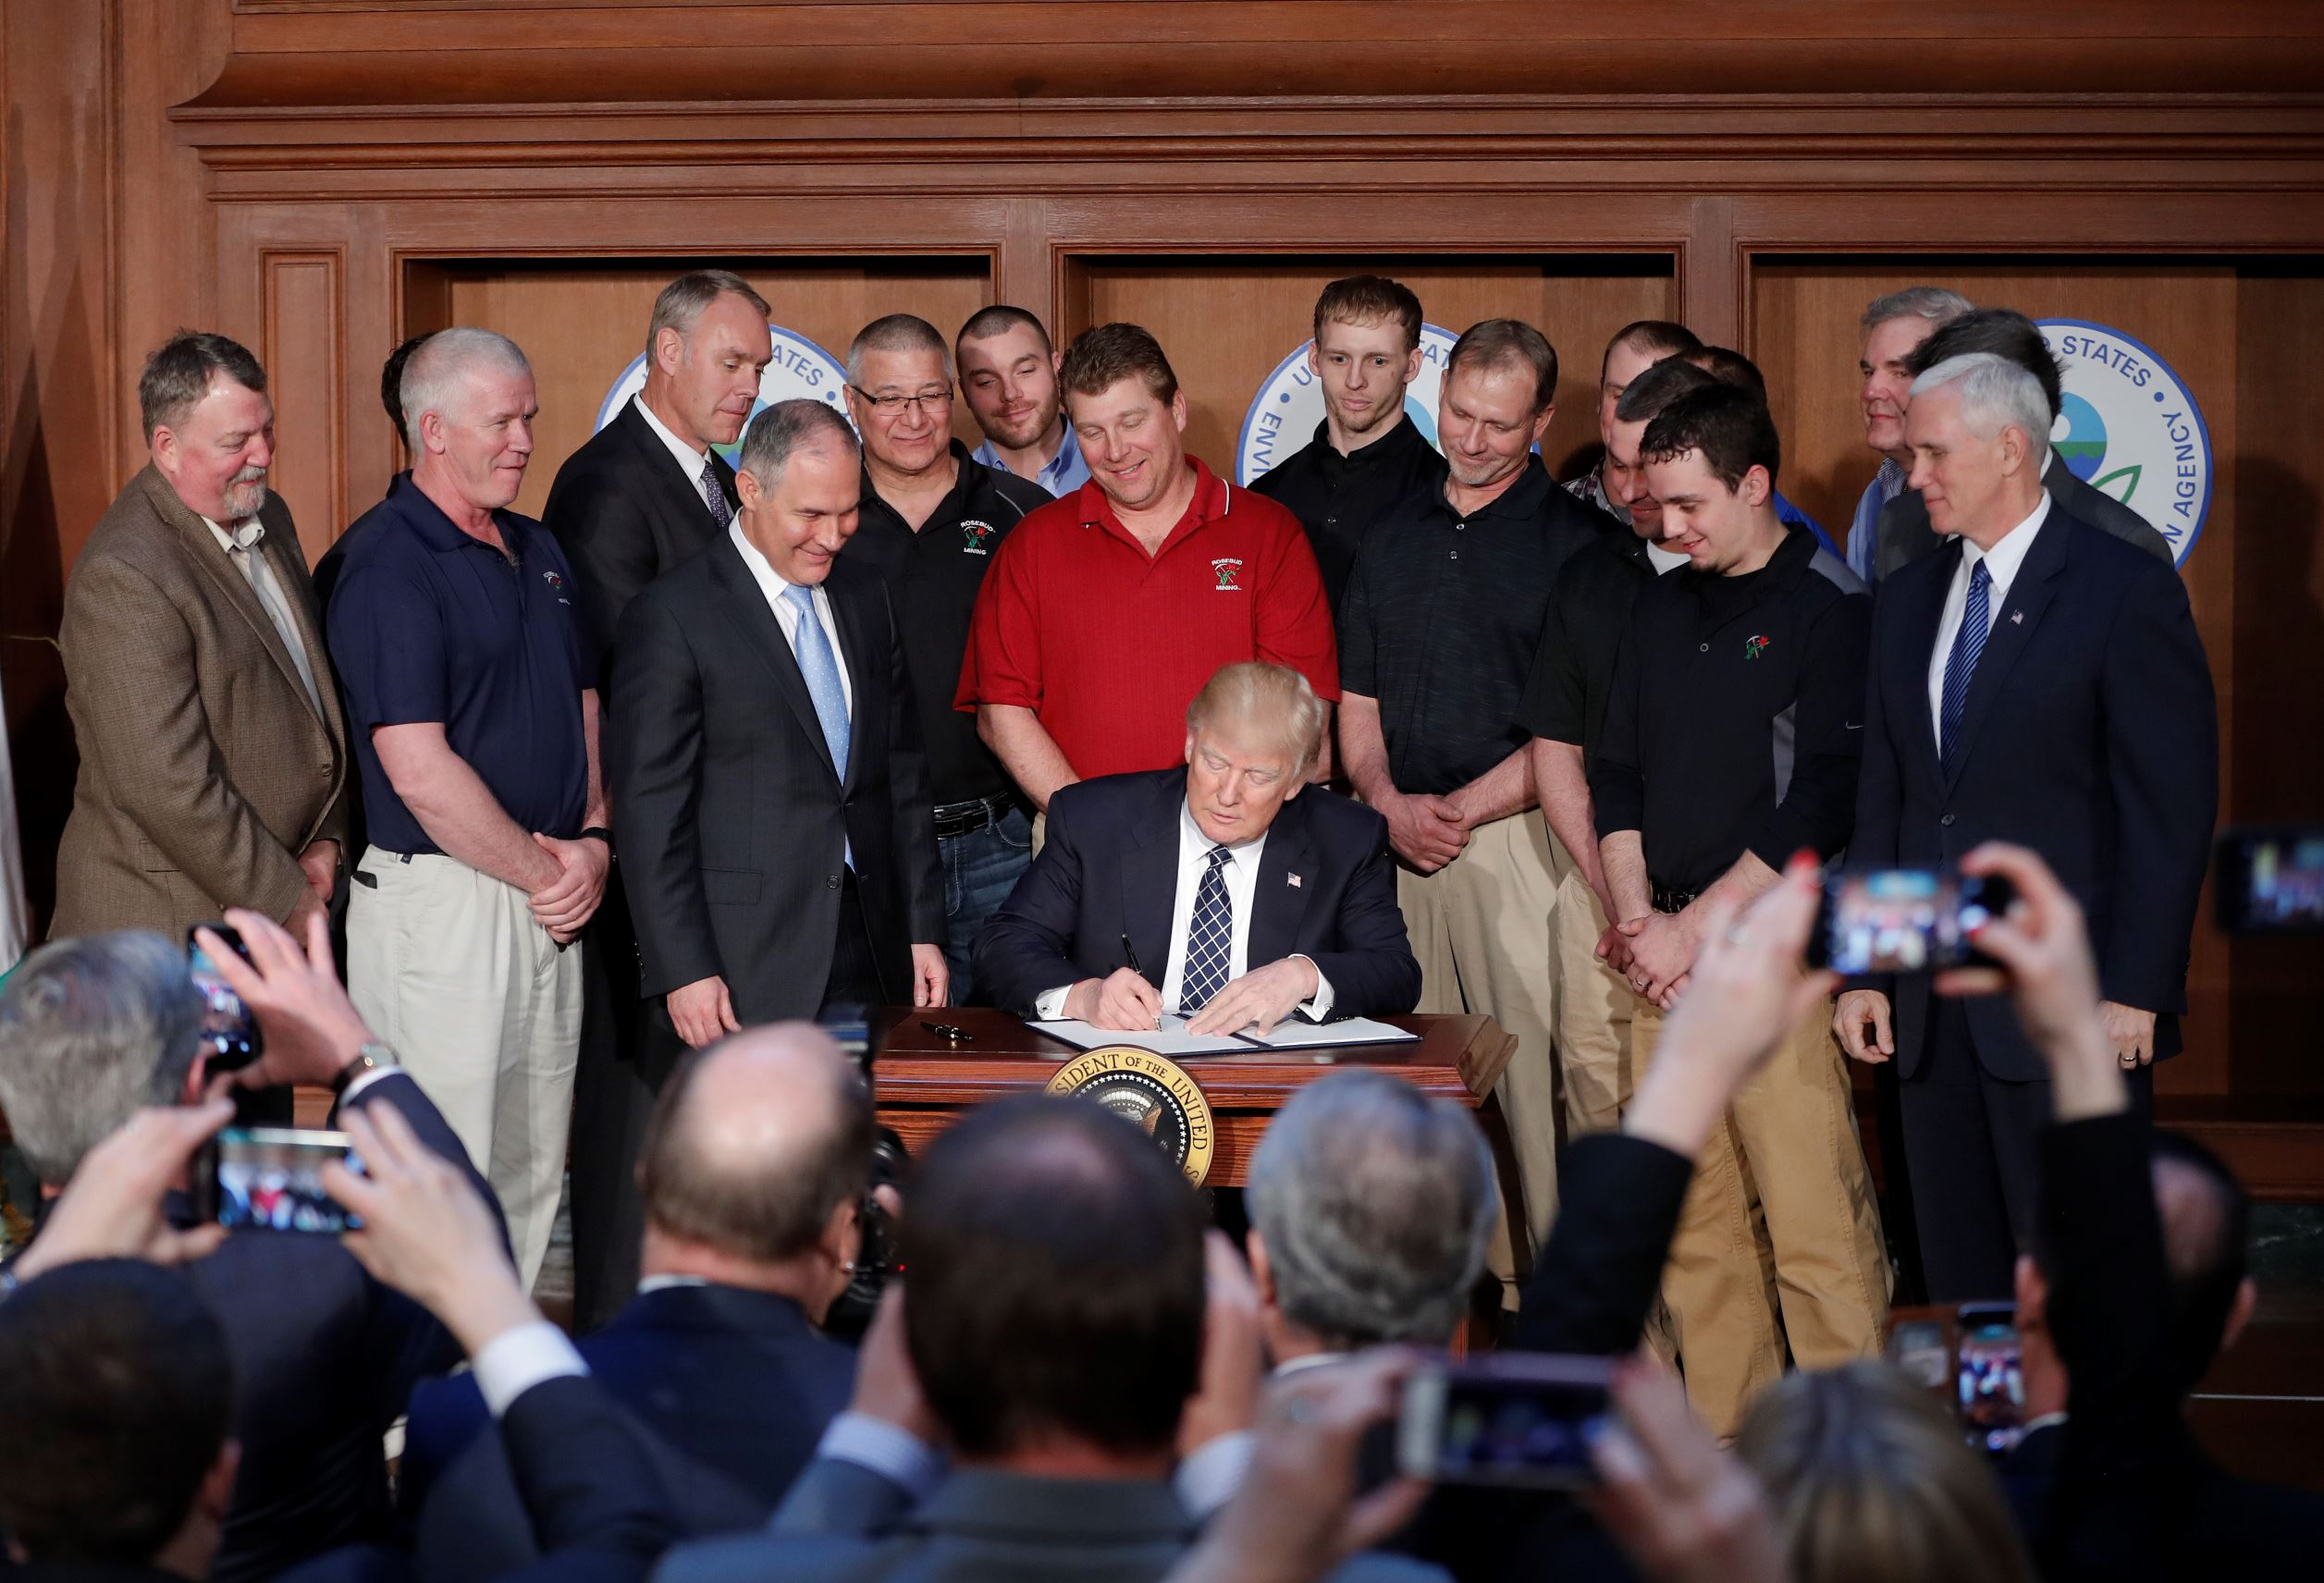 President Donald Trump, accompanied by Environmental Protection Agency (EPA) Administrator Scott Pruitt, third from left, and Vice President Mike Pence, right, signs an Energy Independence Executive Order, Tuesday, March 28, 2017, at EPA headquarters in Washington.